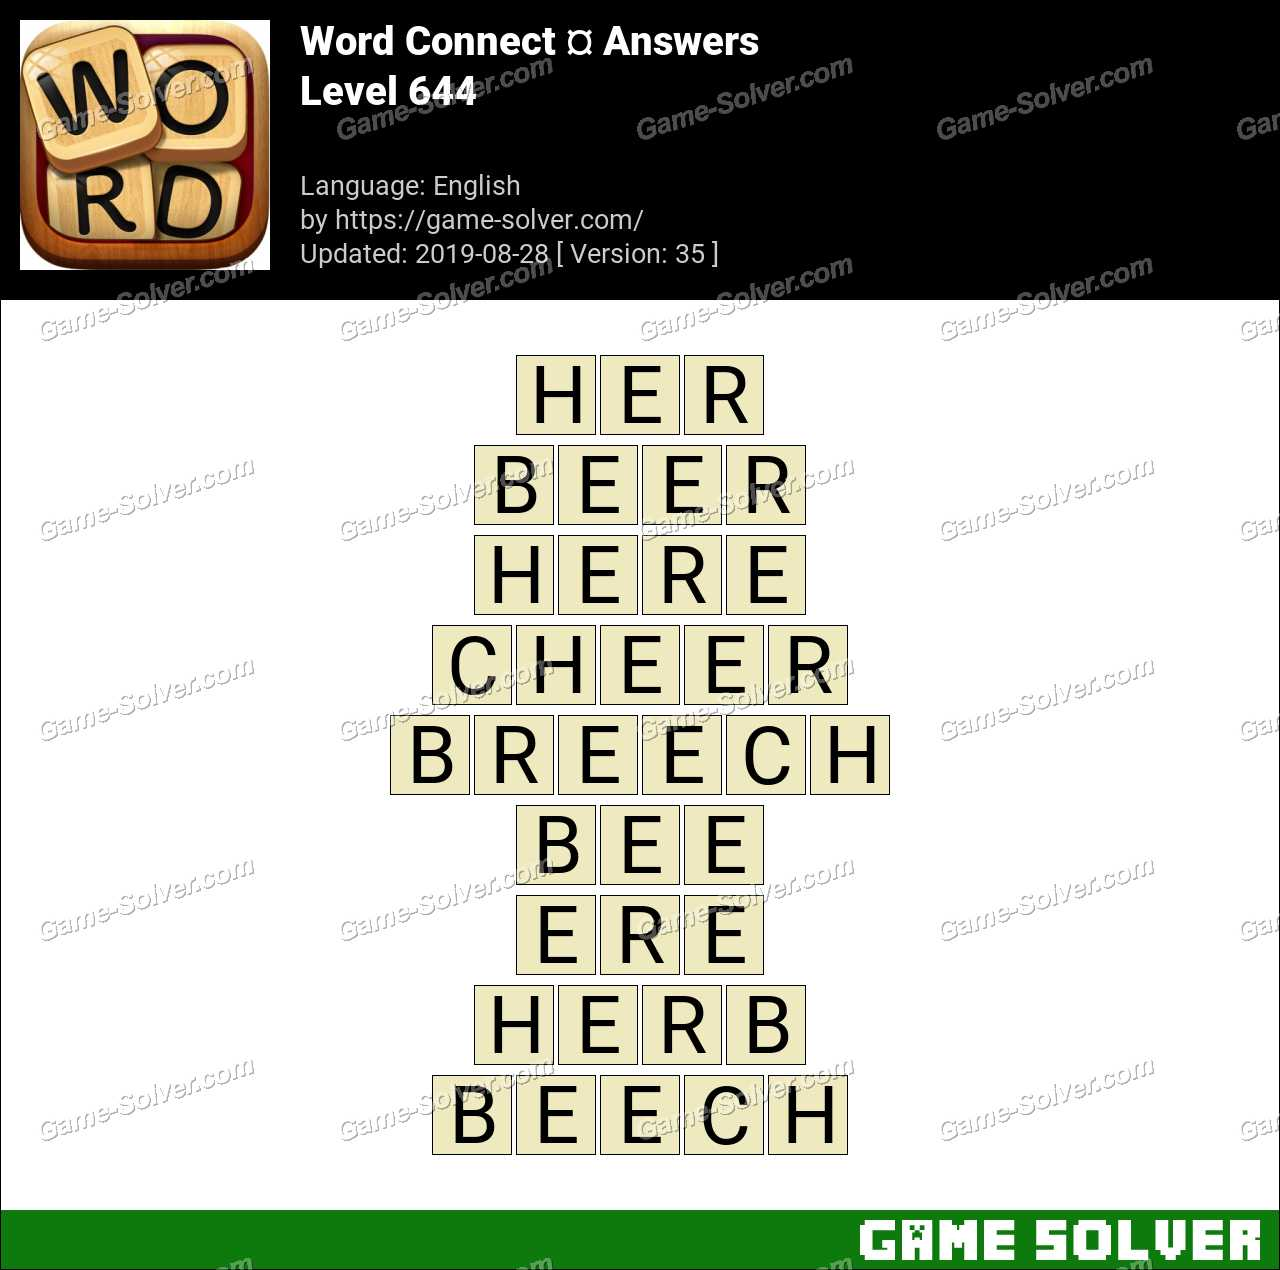 Word Connect Level 644 Answers